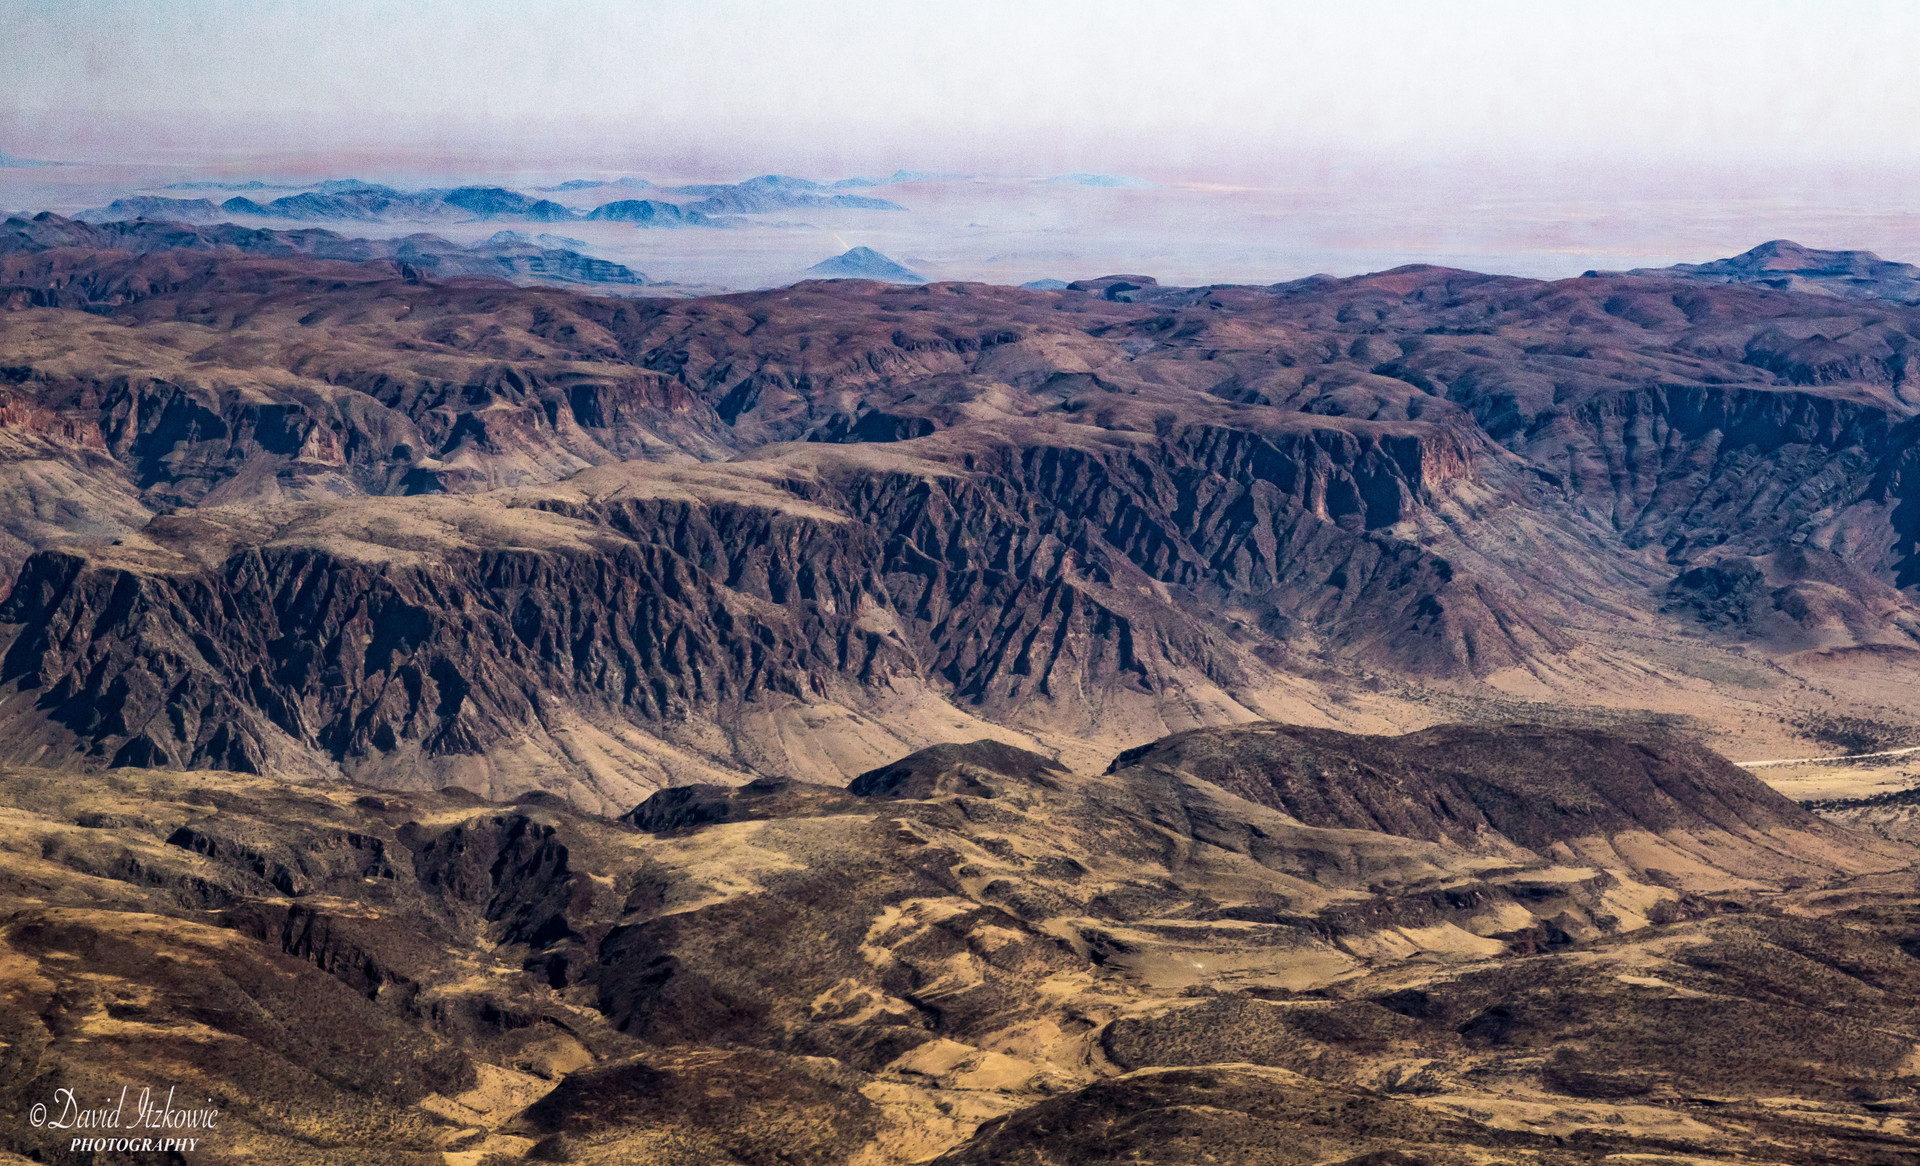 Mountains in the desert 2